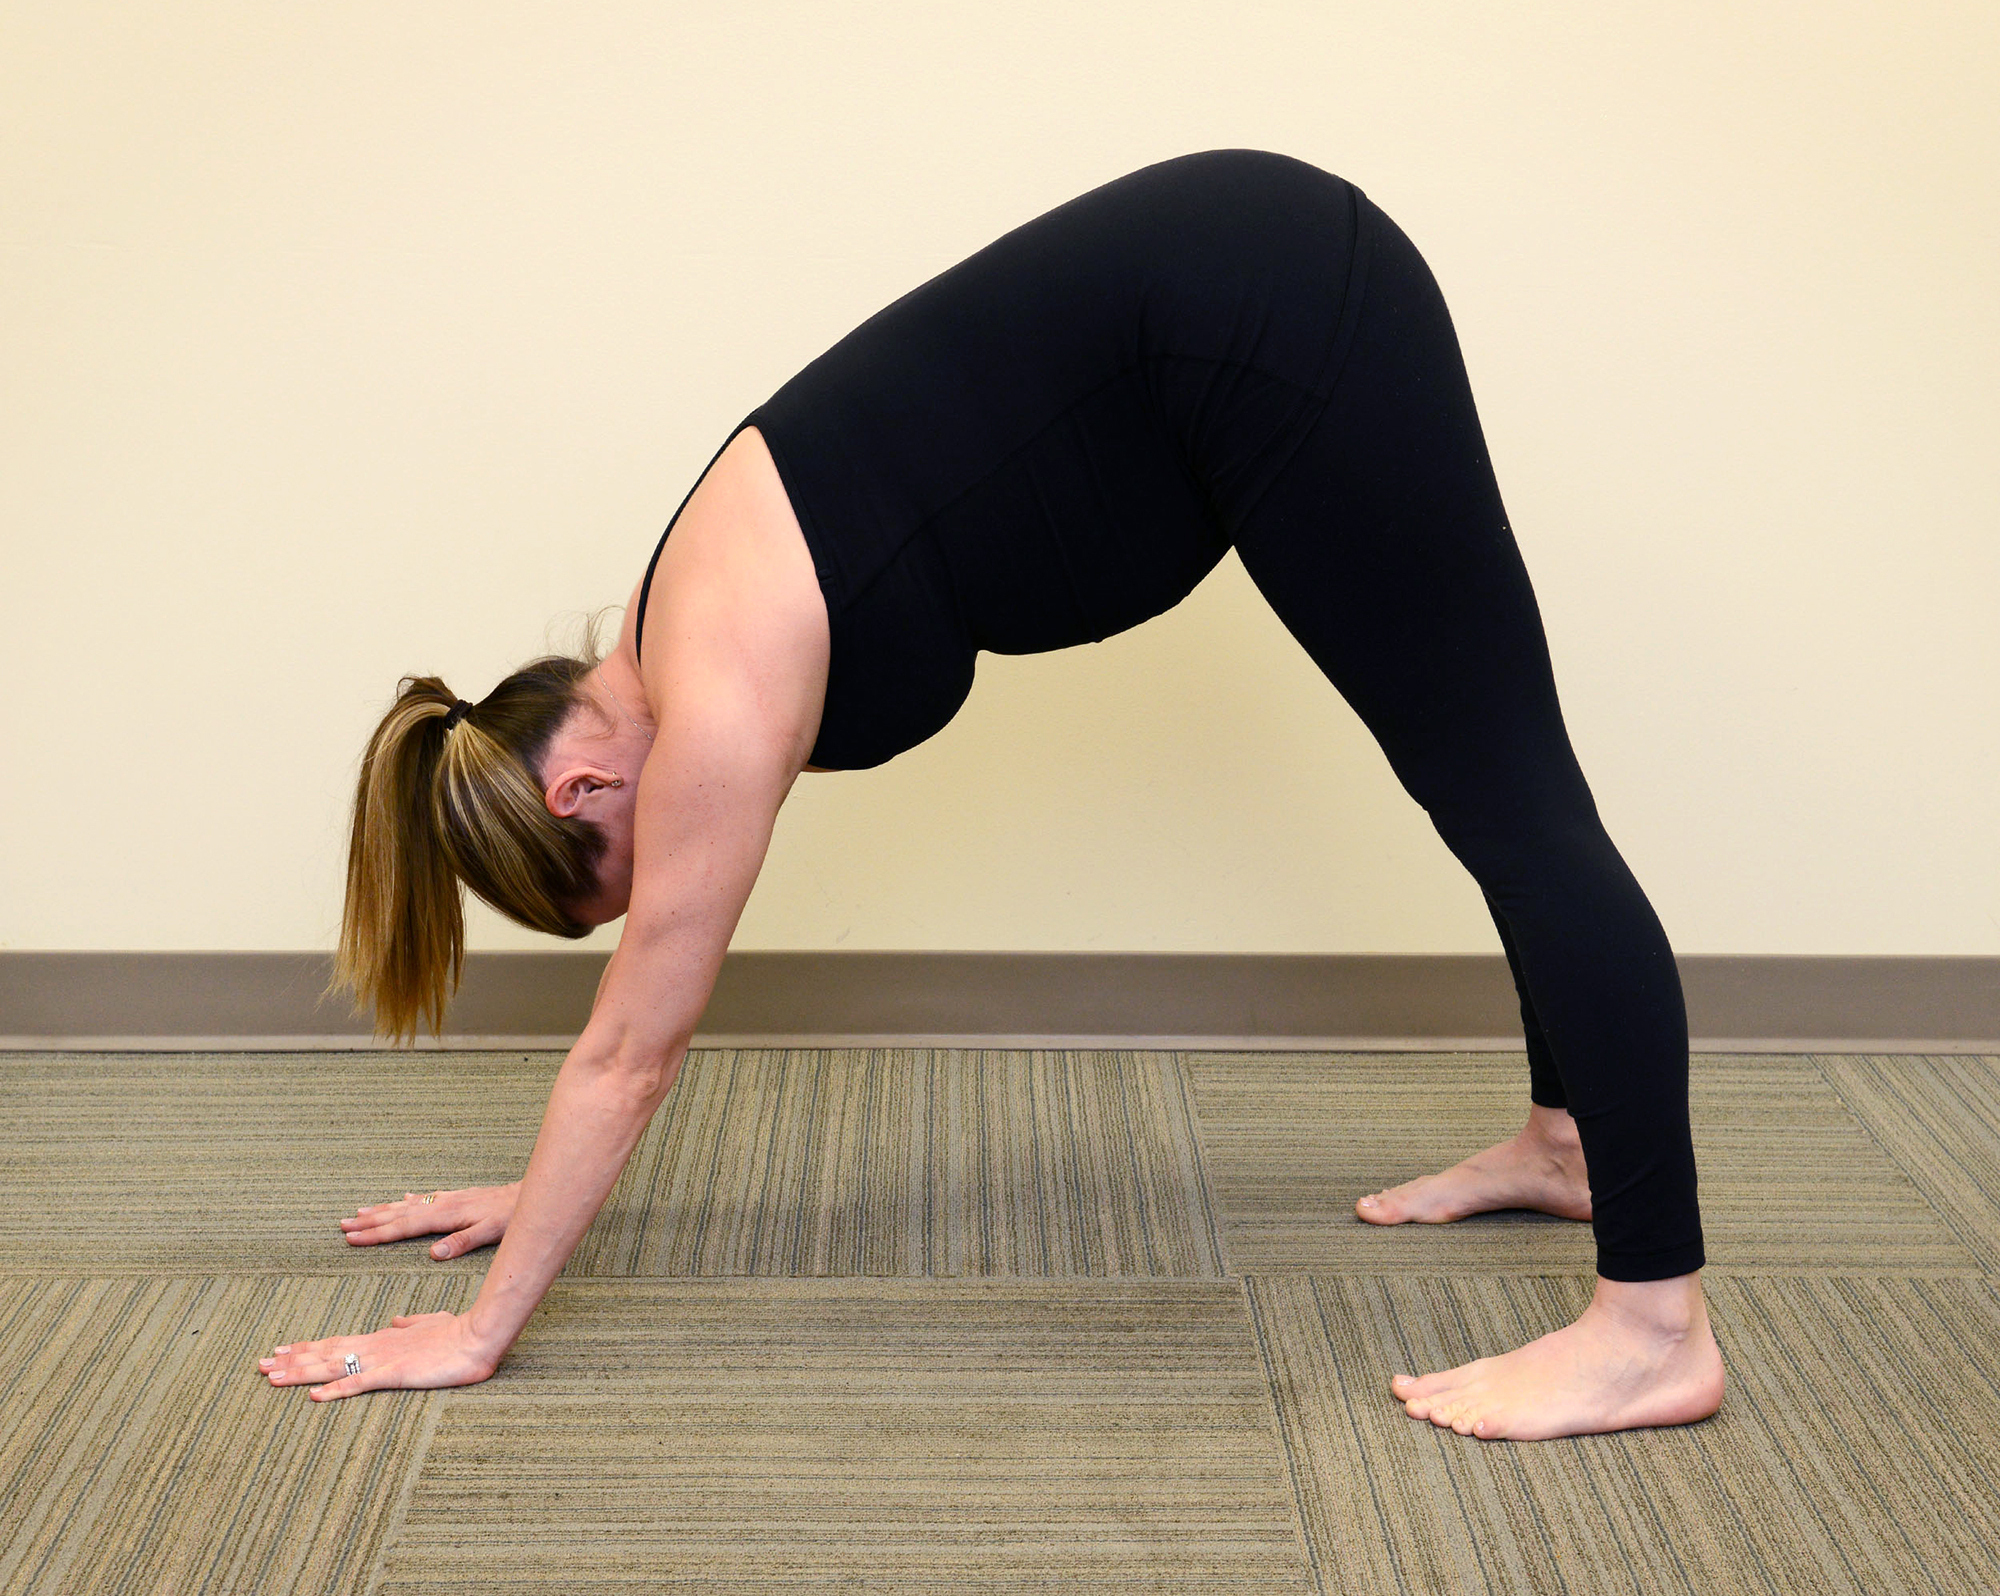 Downward Dog And Other Poses Get The Thumbs Up During Pregnancy ...